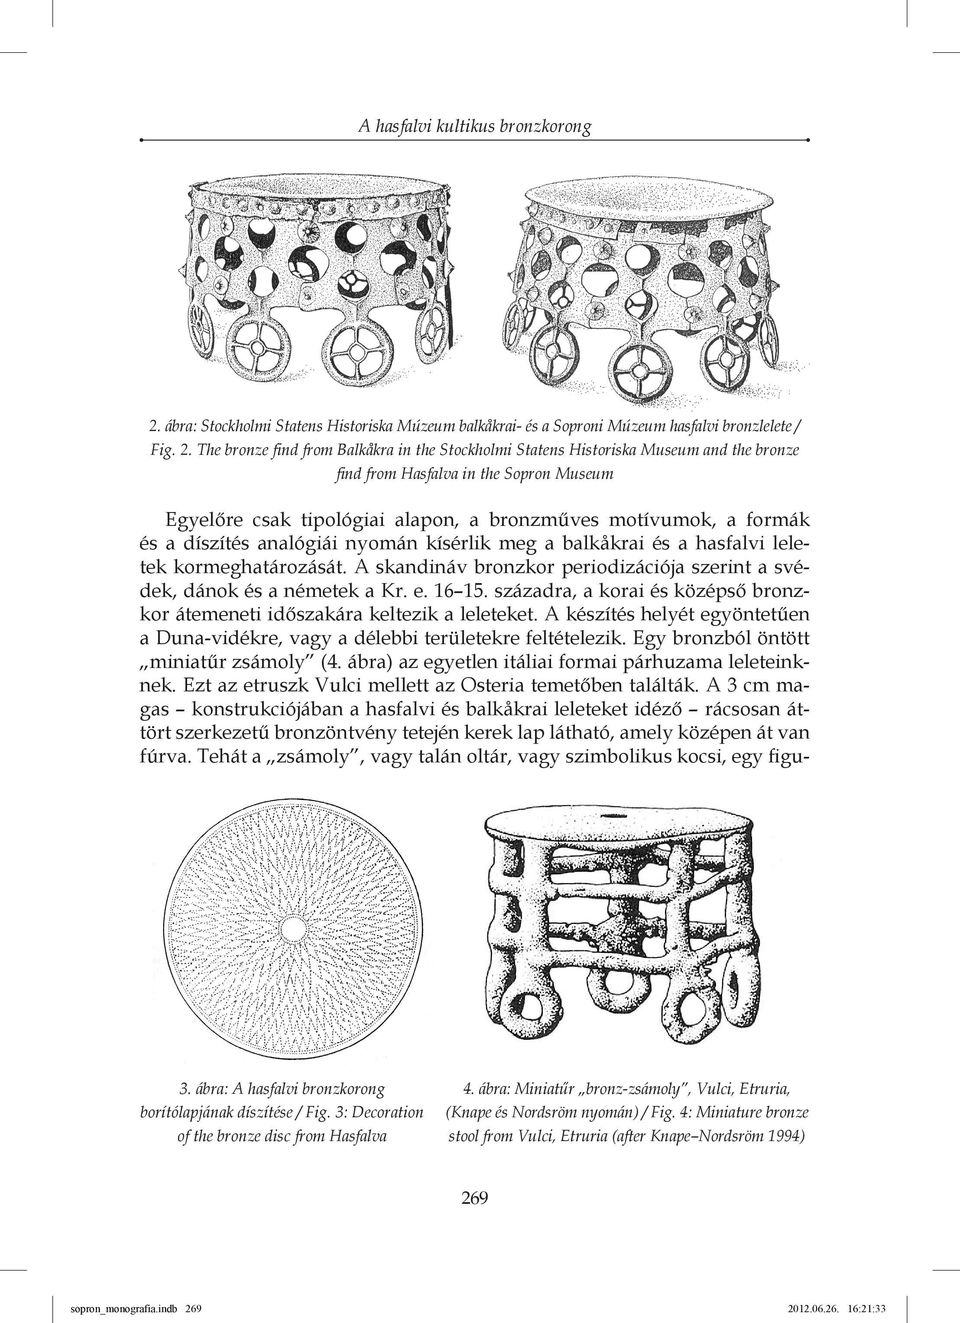 The bronze find from Balkåkra in the Stockholmi Statens Historiska Museum and the bronze find from Hasfalva in the Sopron Museum Egyelőre csak tipológiai alapon, a bronzműves motívumok, a formák és a